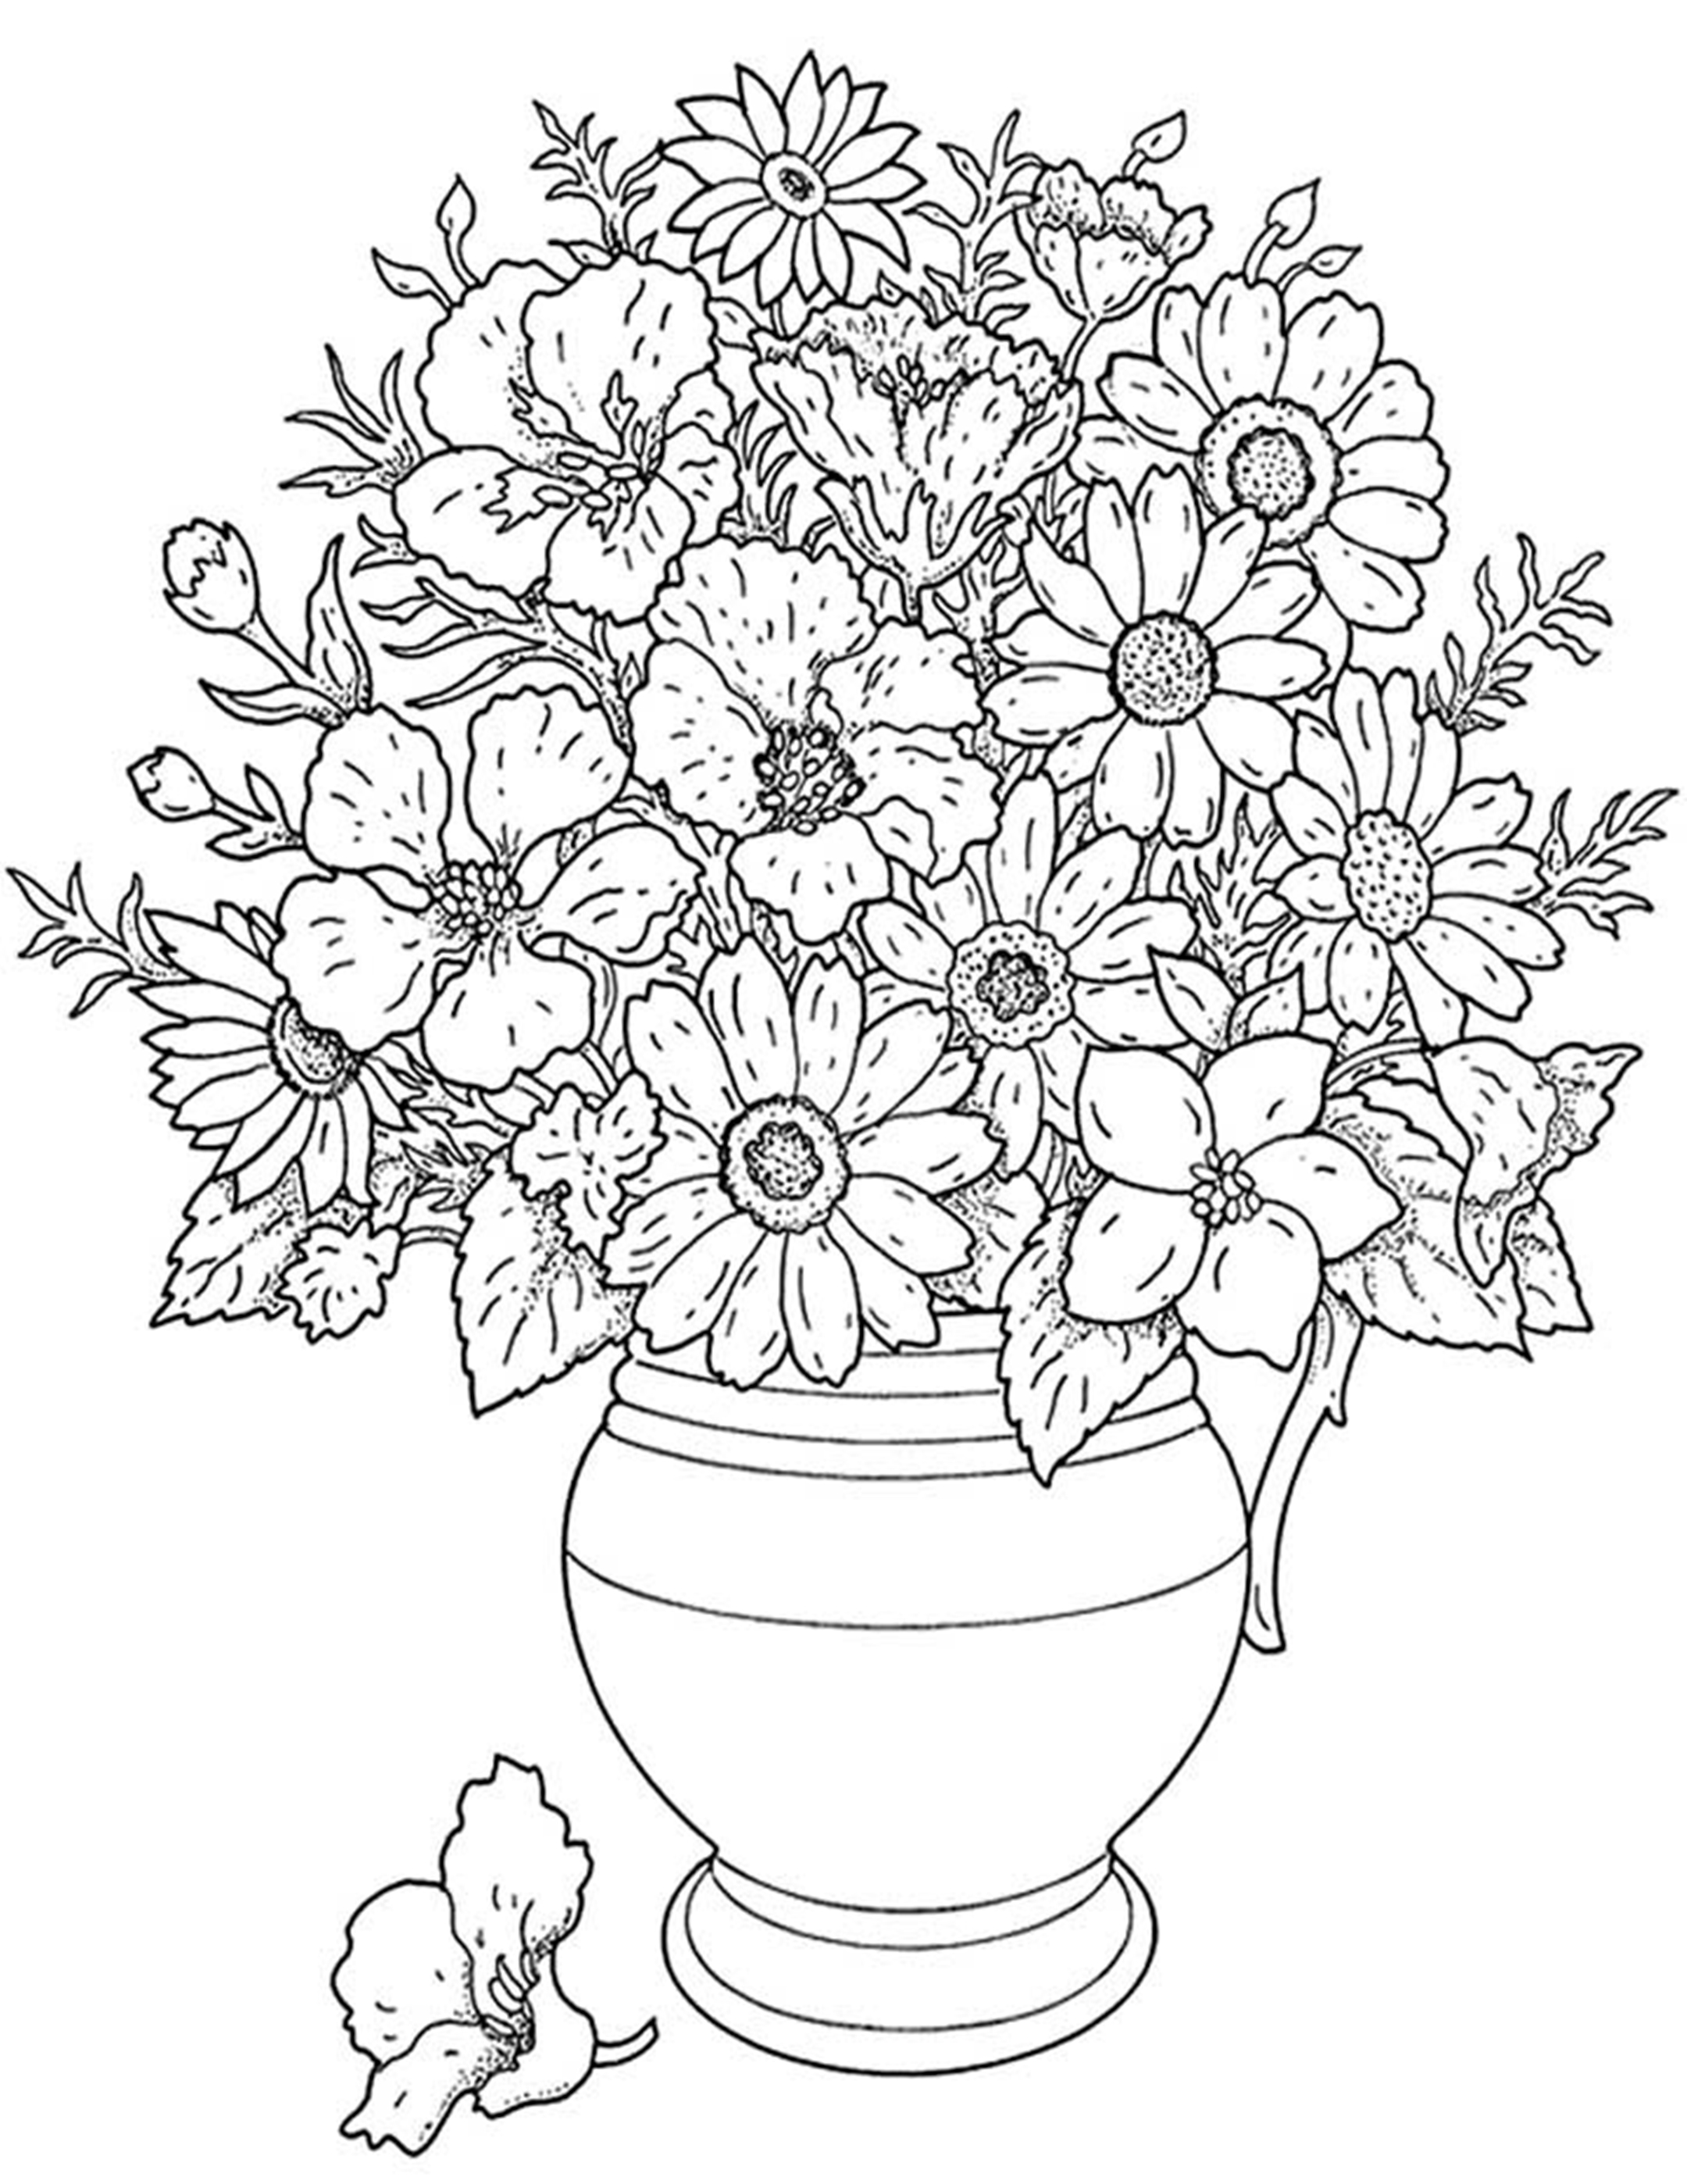 picture of flowers to print free printable flower coloring pages for kids best print to picture flowers of